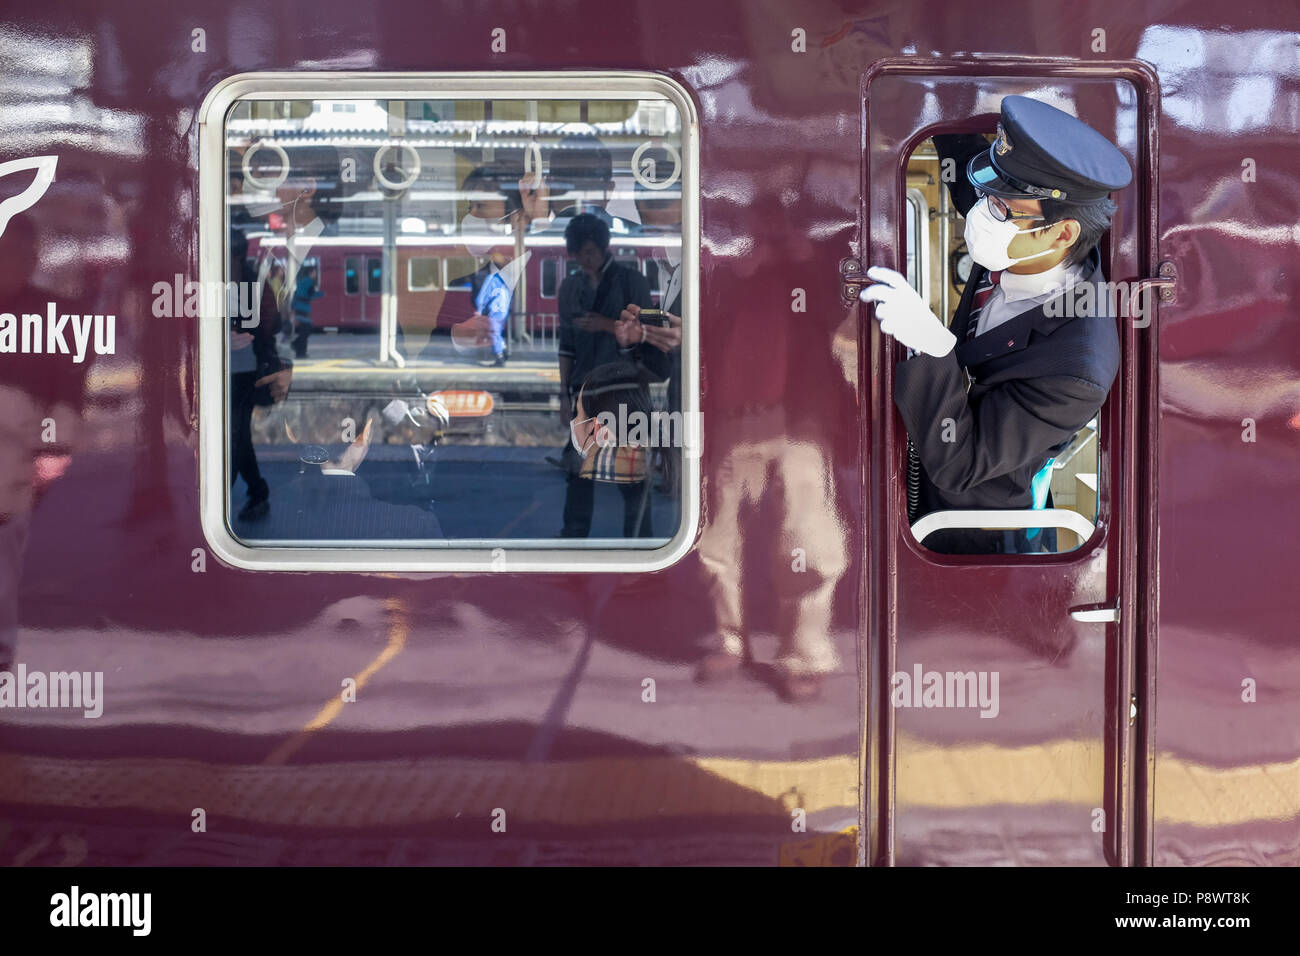 Engine driver on a train for Hankyu Railway Kobe line. This is one of three major commuter rail lines in the Kobe Osaka area. - Stock Image